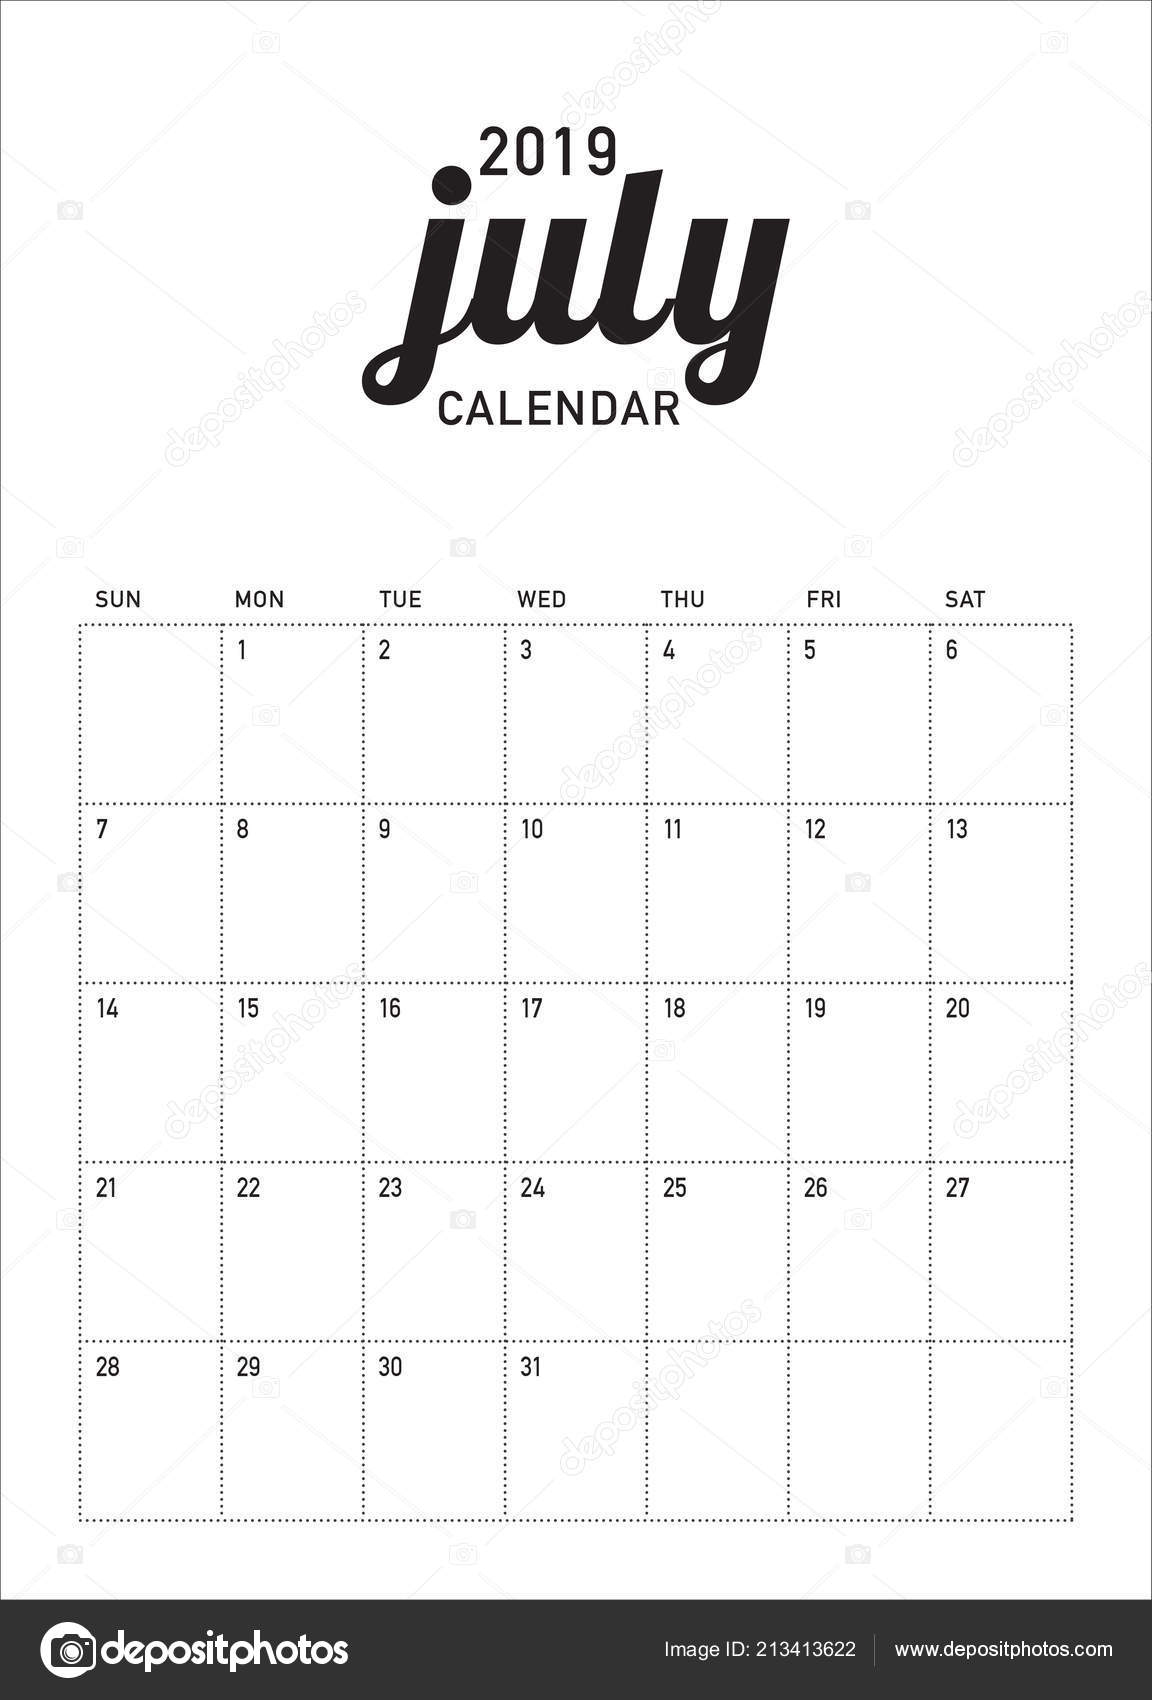 Calendario Julio 2019 Vector.Ilustracion Vector Calendario Julio 2019 Escritorio Diseno